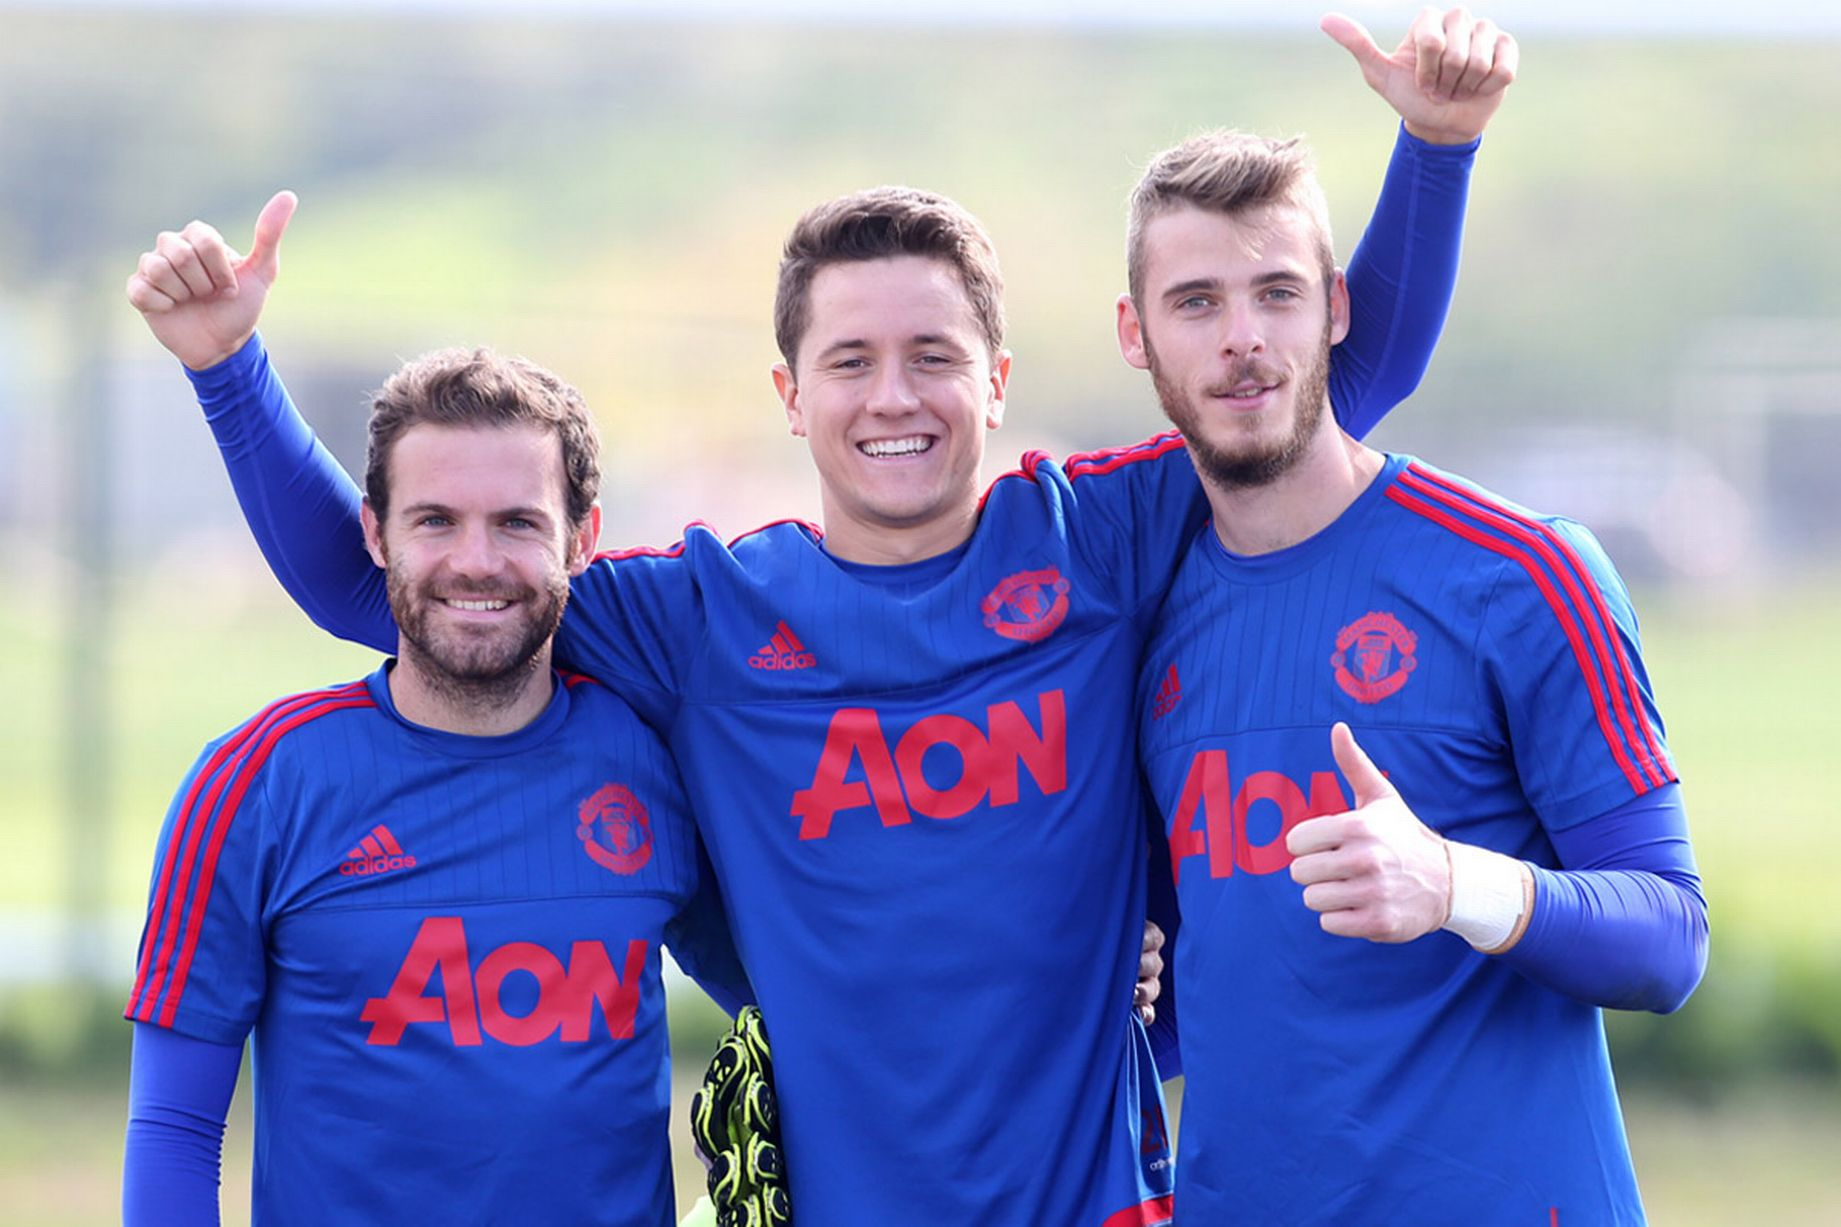 Herrera: Spanish players have found their place at Manchester United